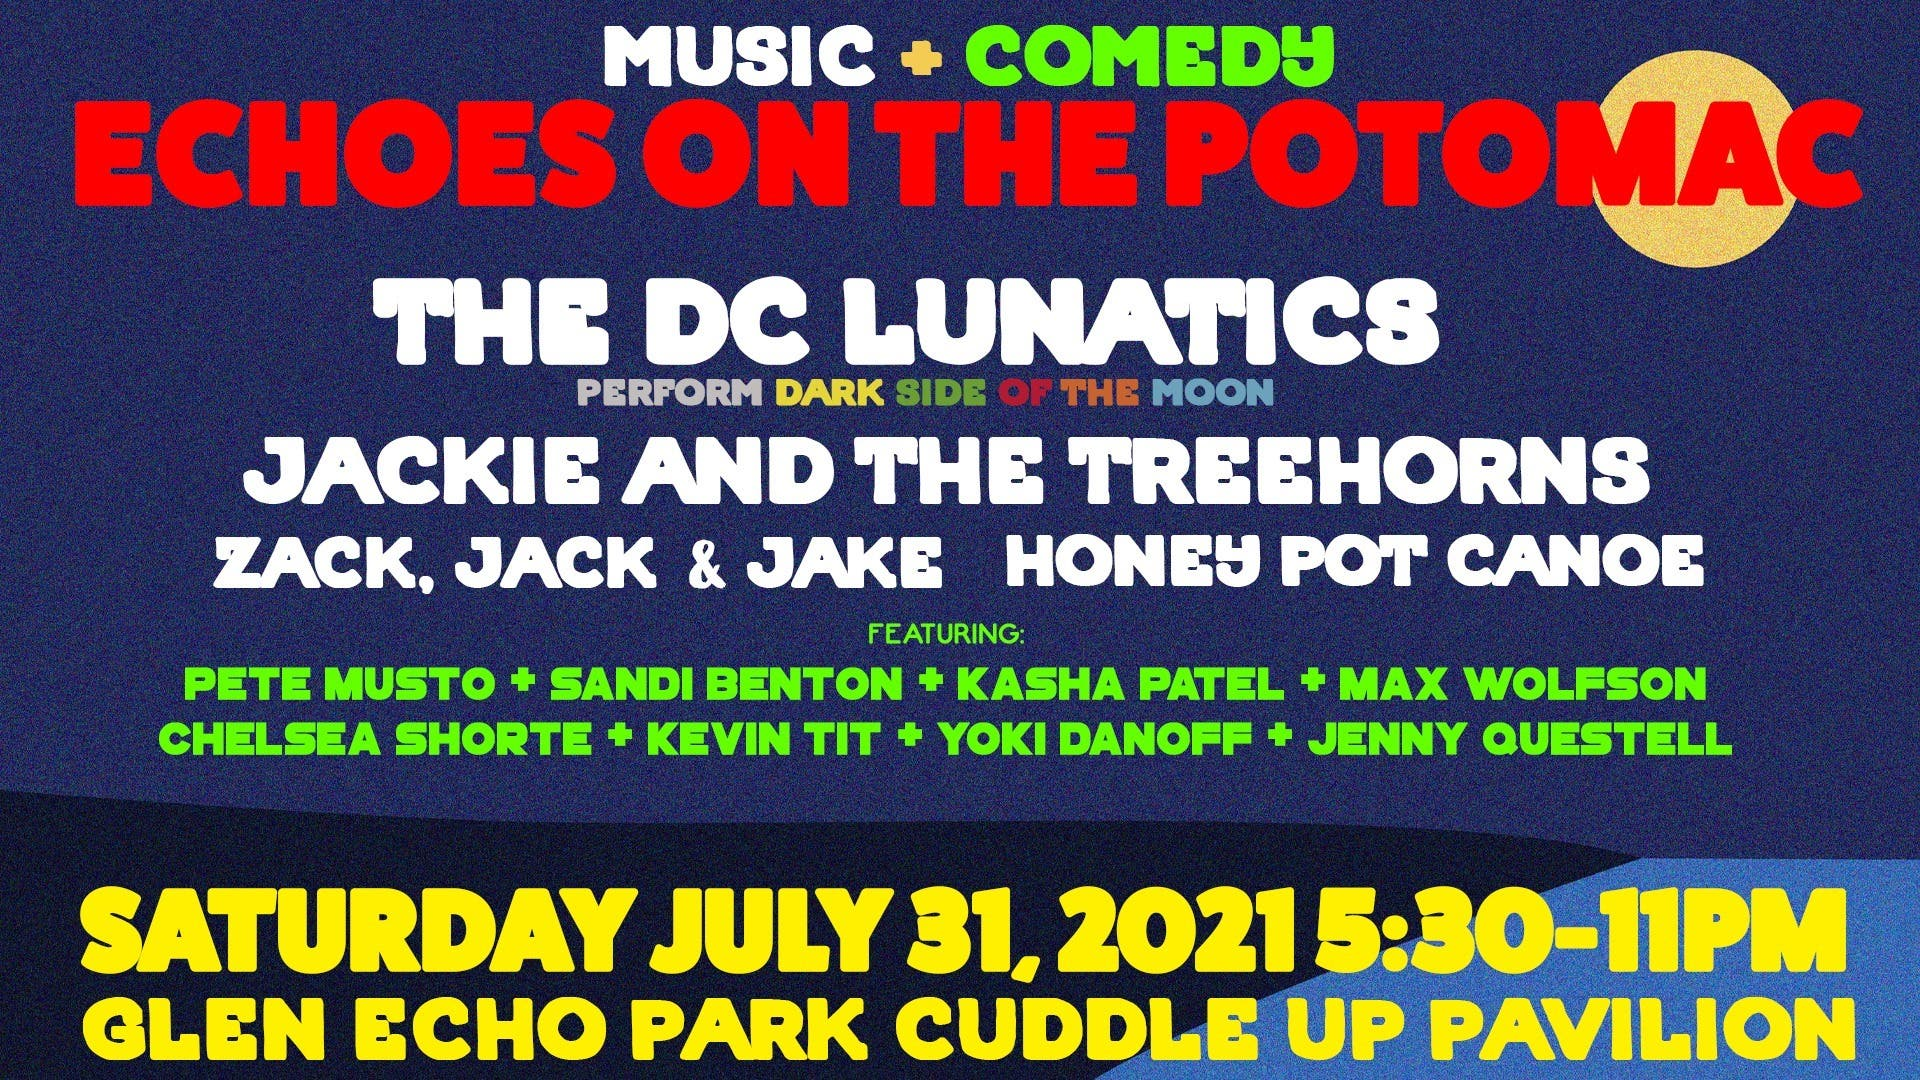 Echoes On The Potomac (FREE Live Music & Comedy)